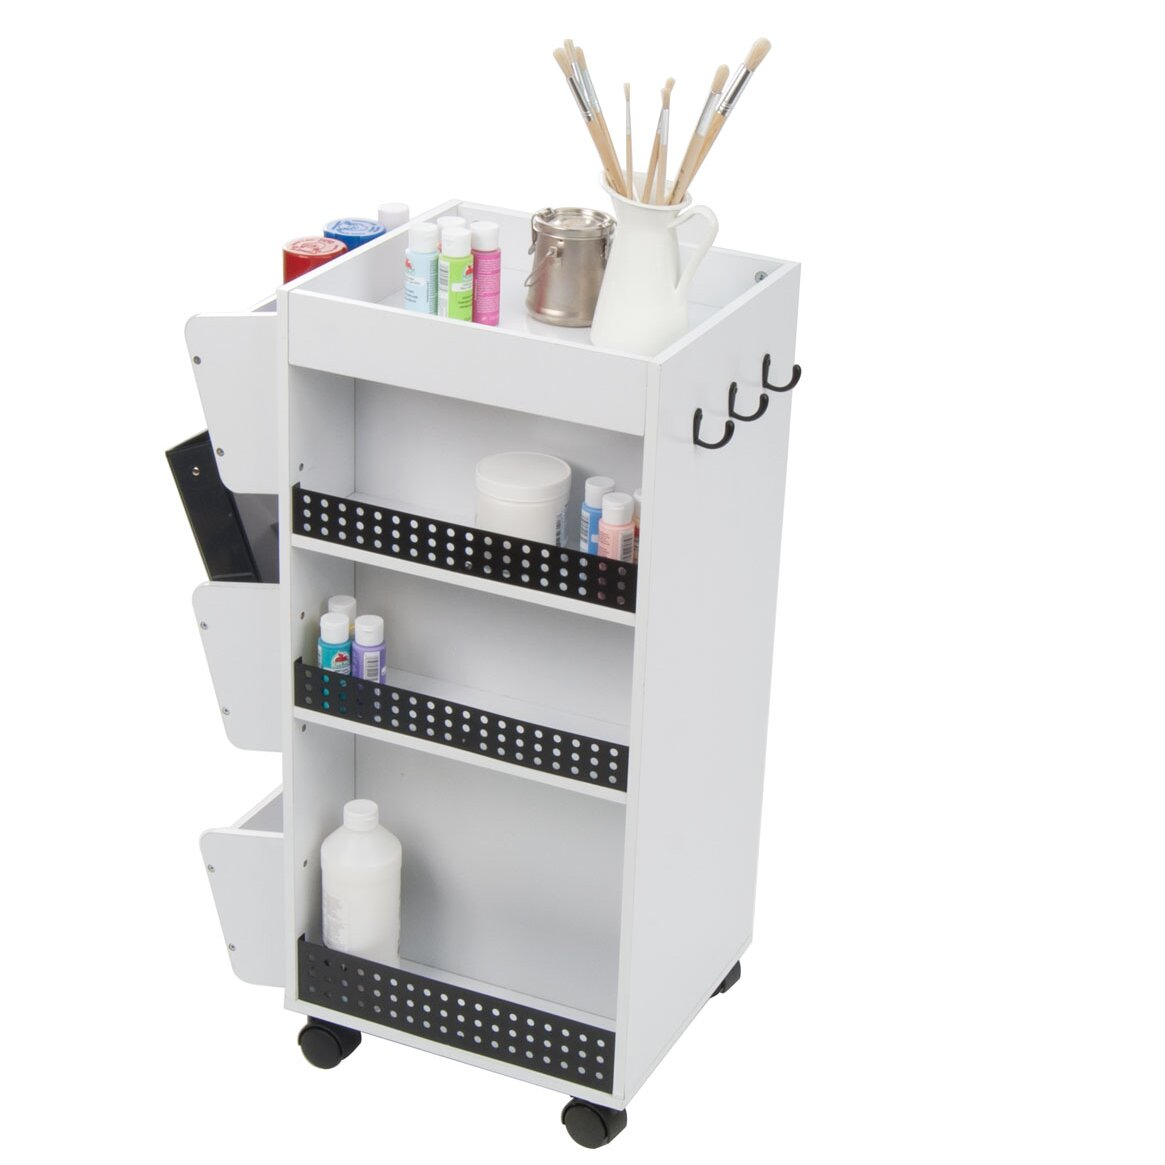 a rolling cart with bins and a table top to hold your crafting supplies